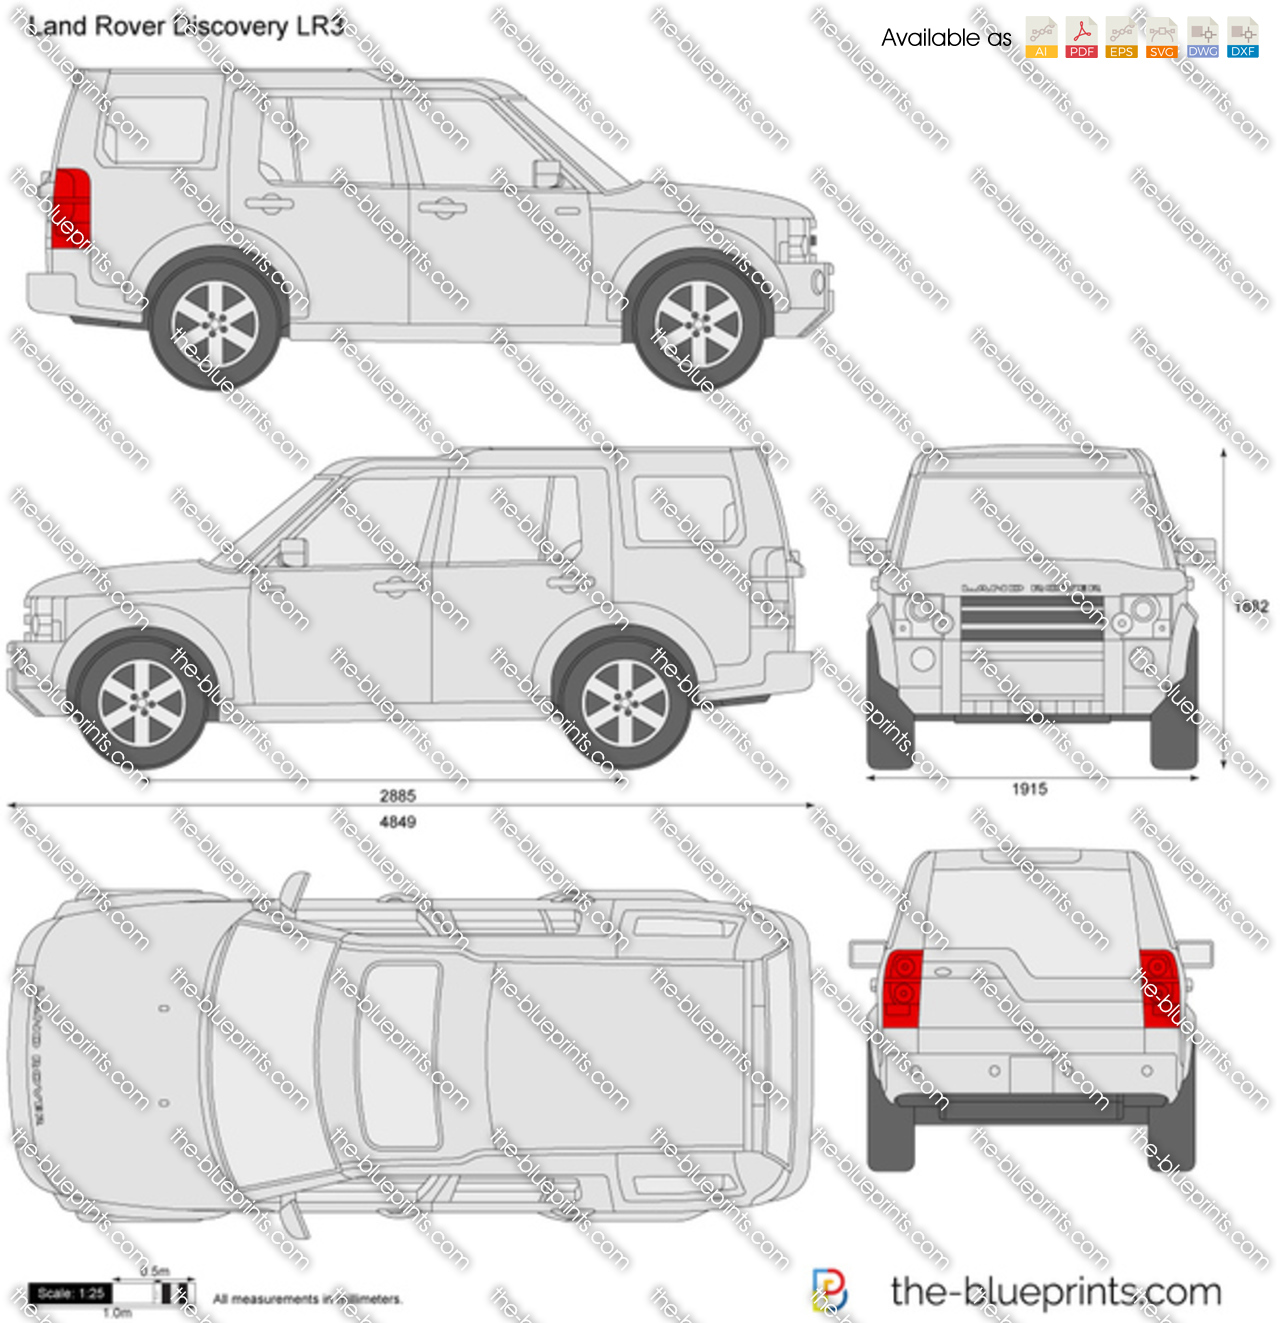 Land Rover Discovery LR3 2004